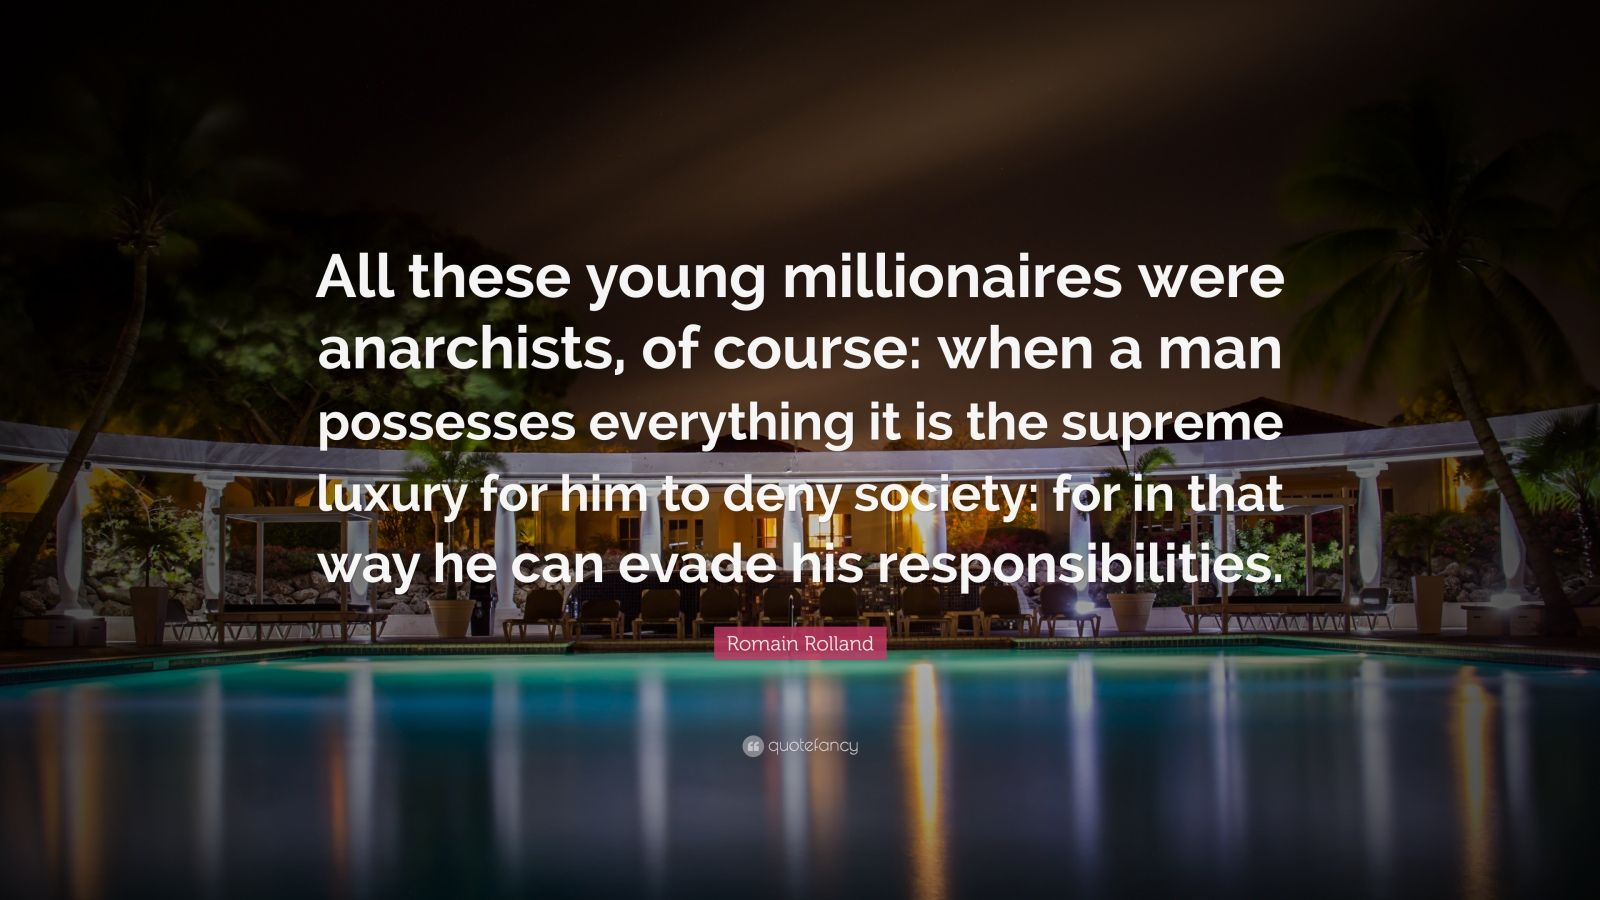 """Romain Rolland Quote: """"All these young millionaires were anarchists, of course: when a man possesses everything it is the supreme luxury for him to deny society: for in that way he can evade his responsibilities."""""""